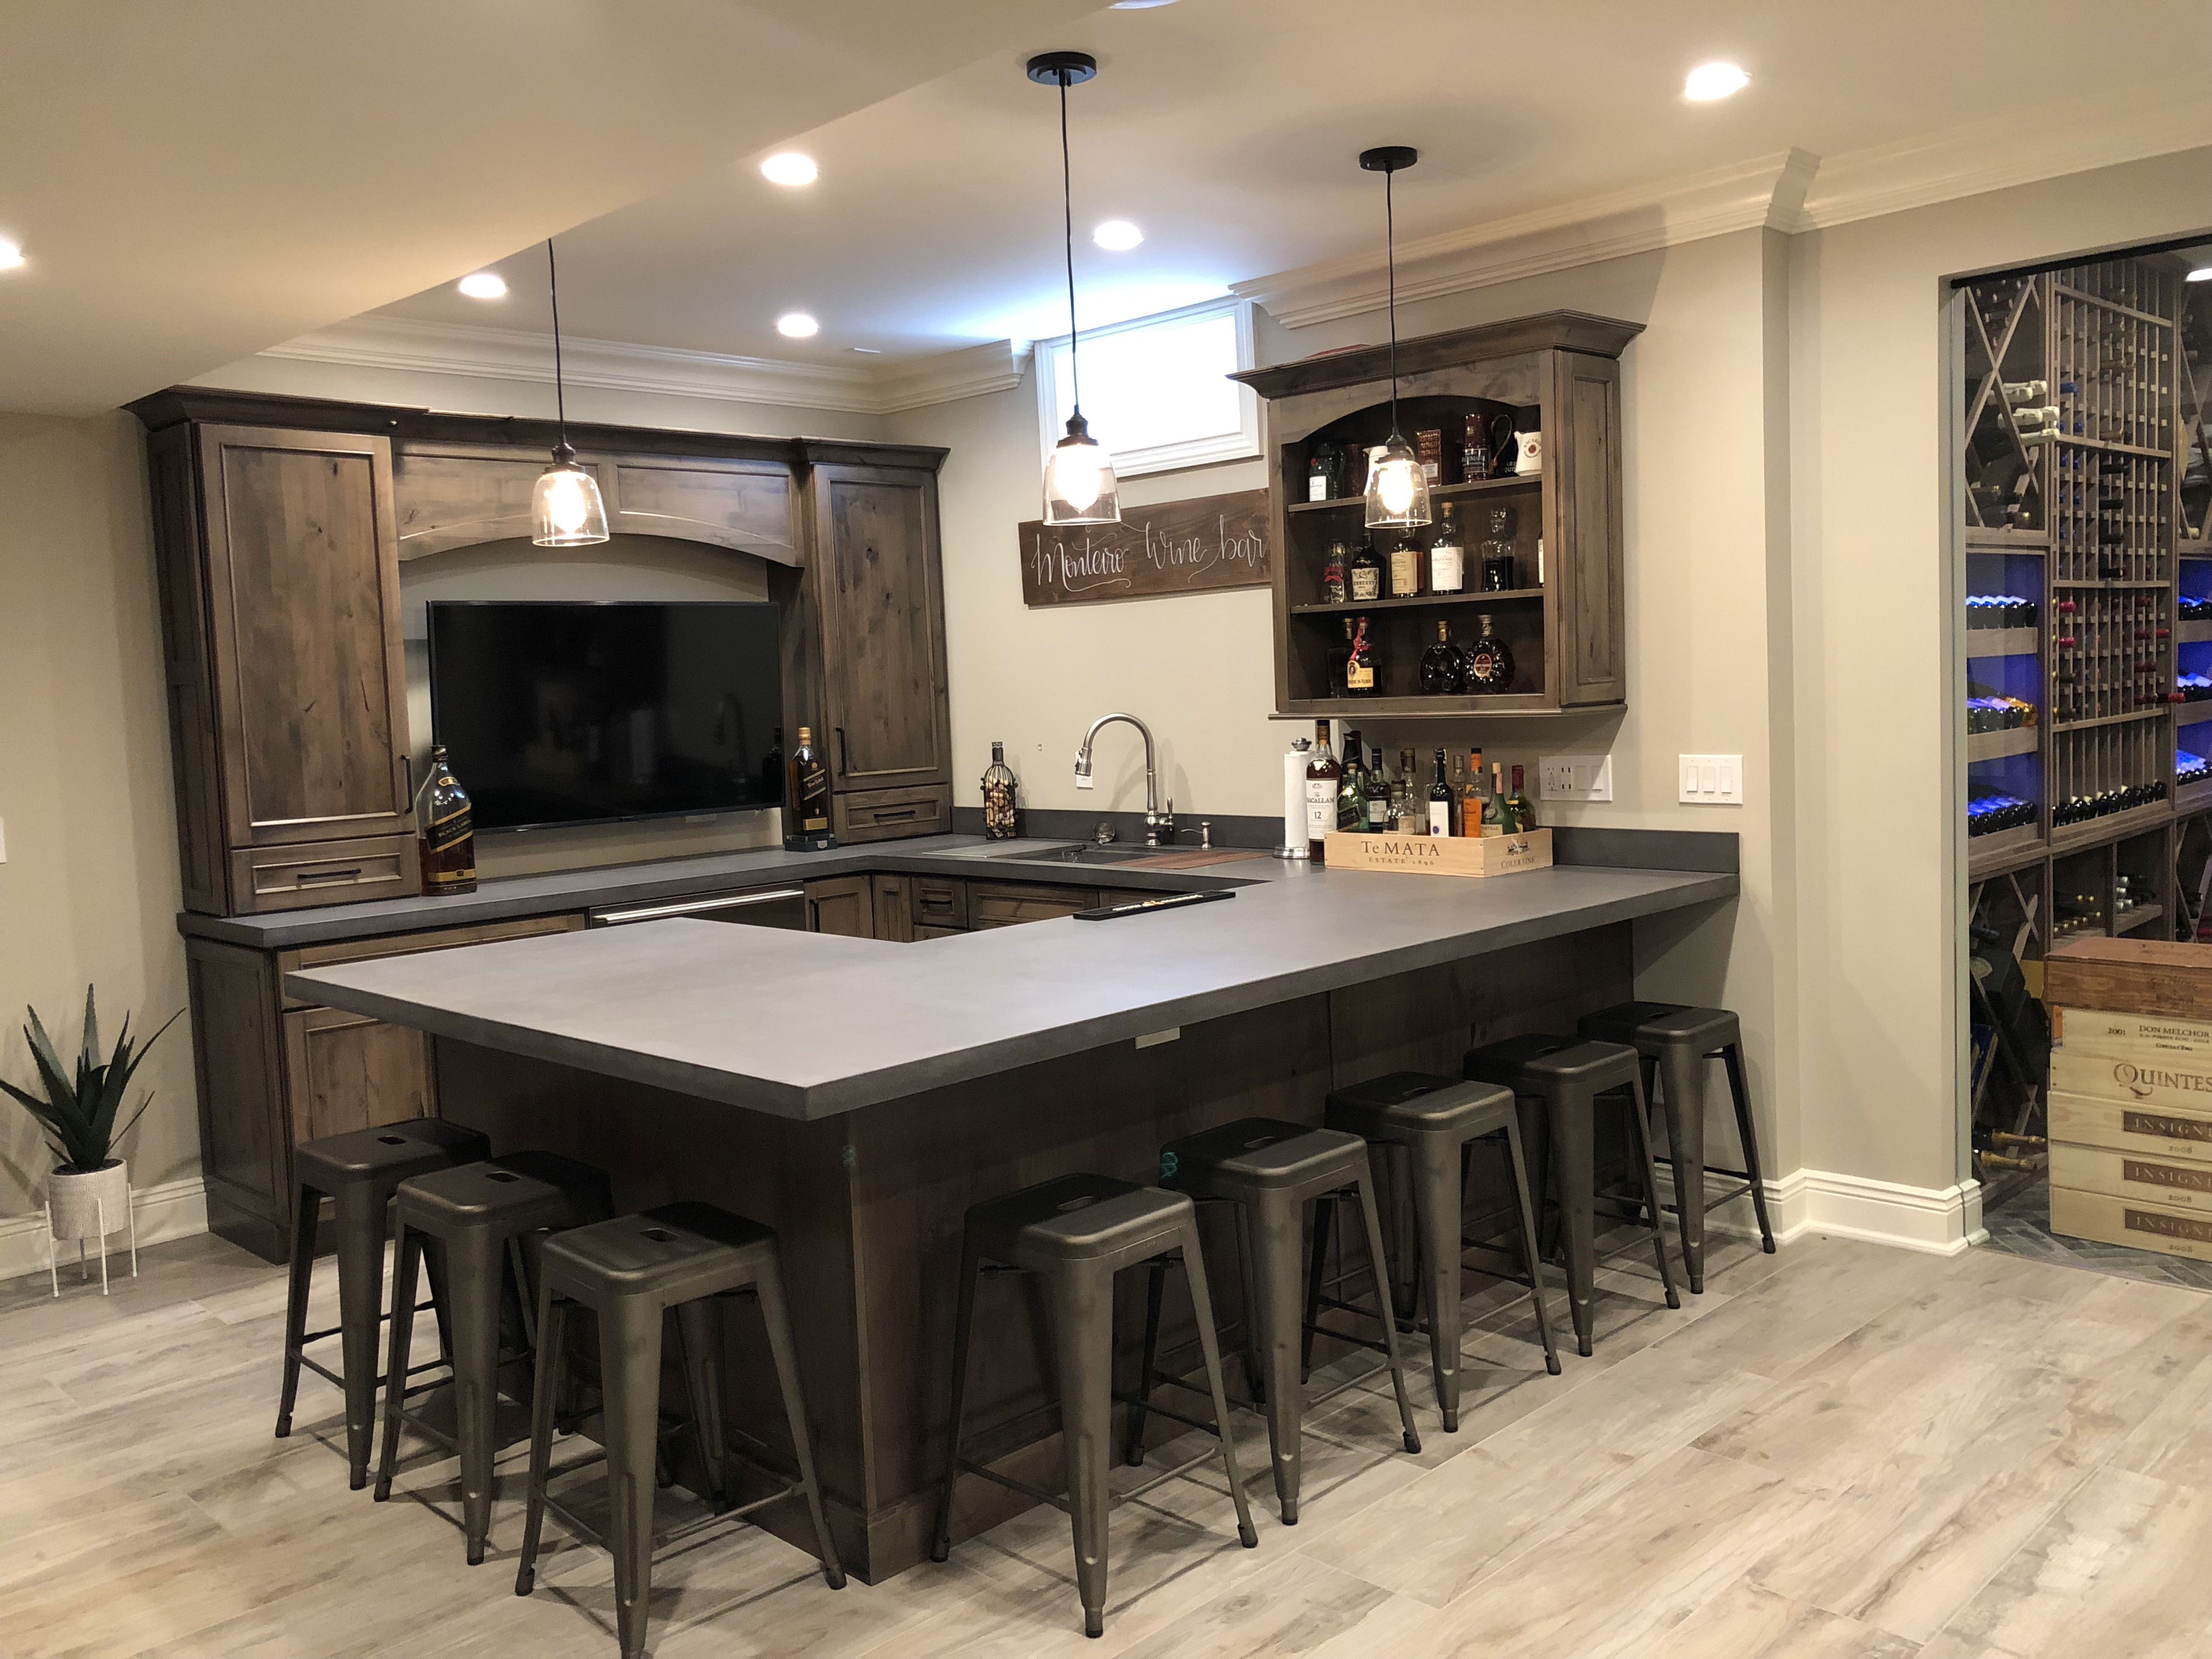 Kitchen Bar with Liquor Glass on Top